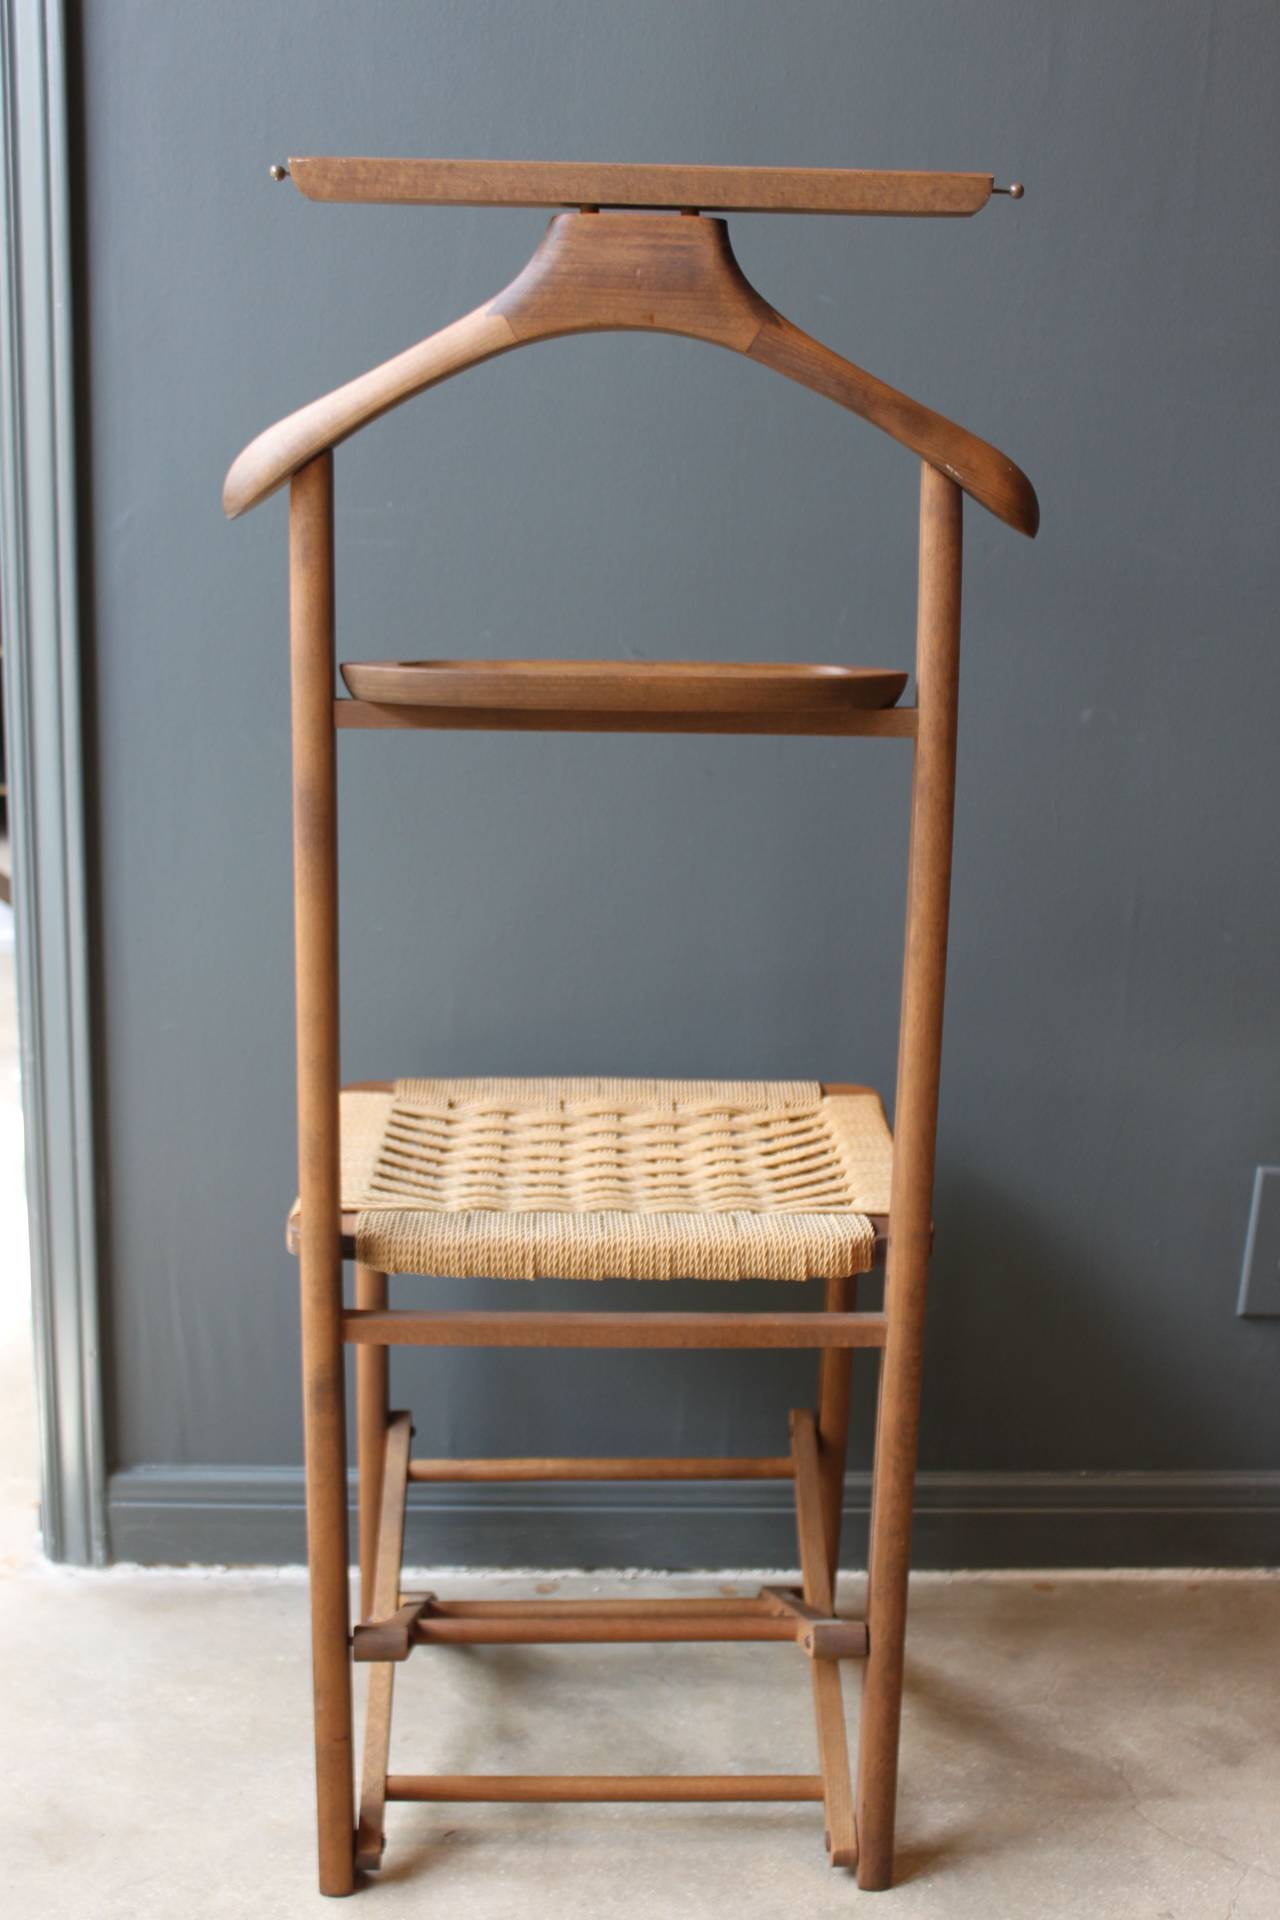 Vintage Wood Valet Folding Chair with Woven Caned Seat Mid 20th